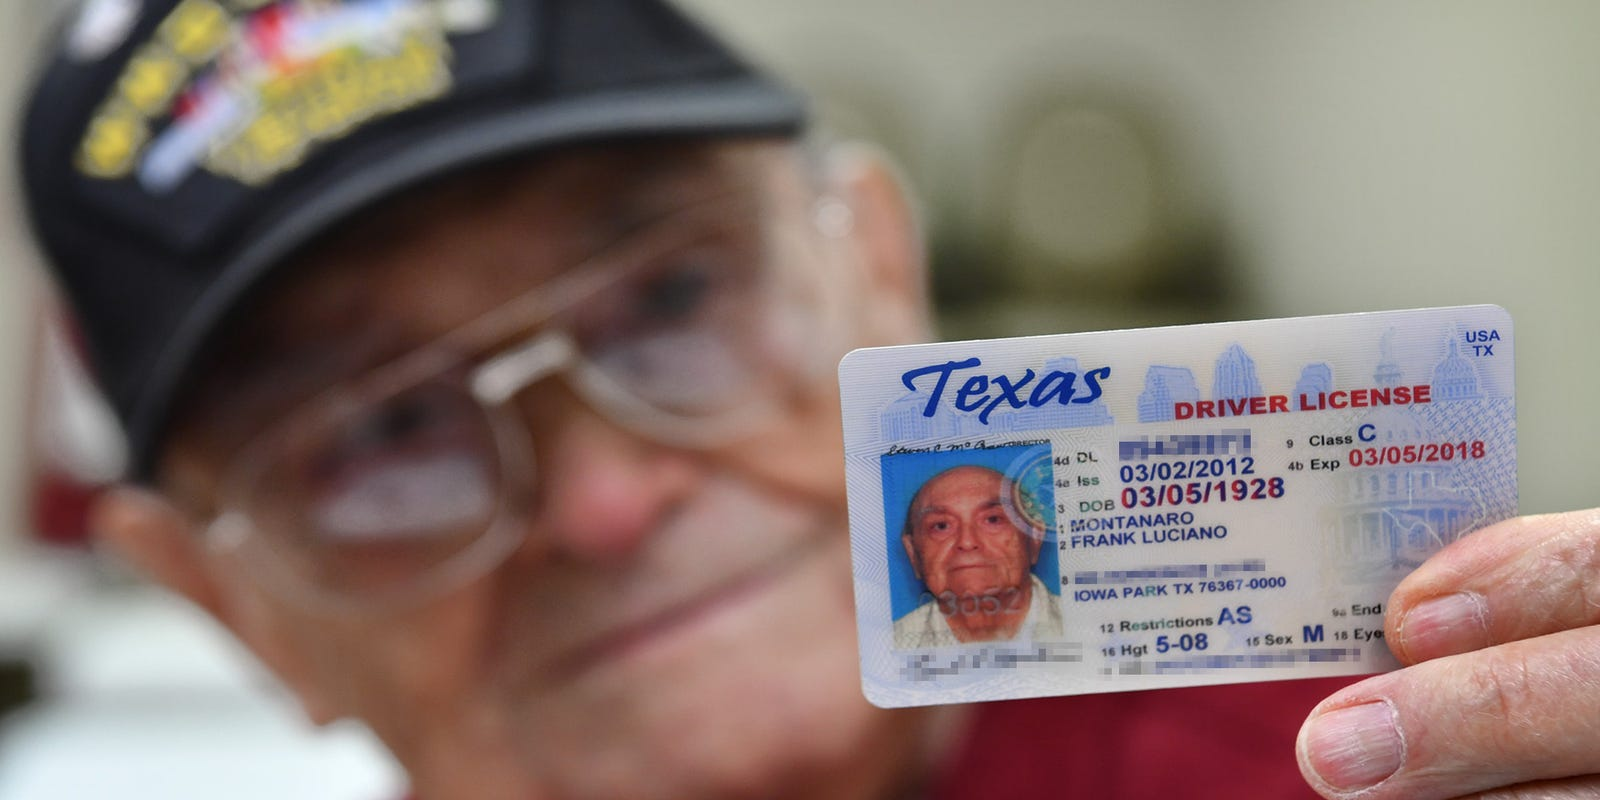 texas drivers license restrictions for 16 year olds